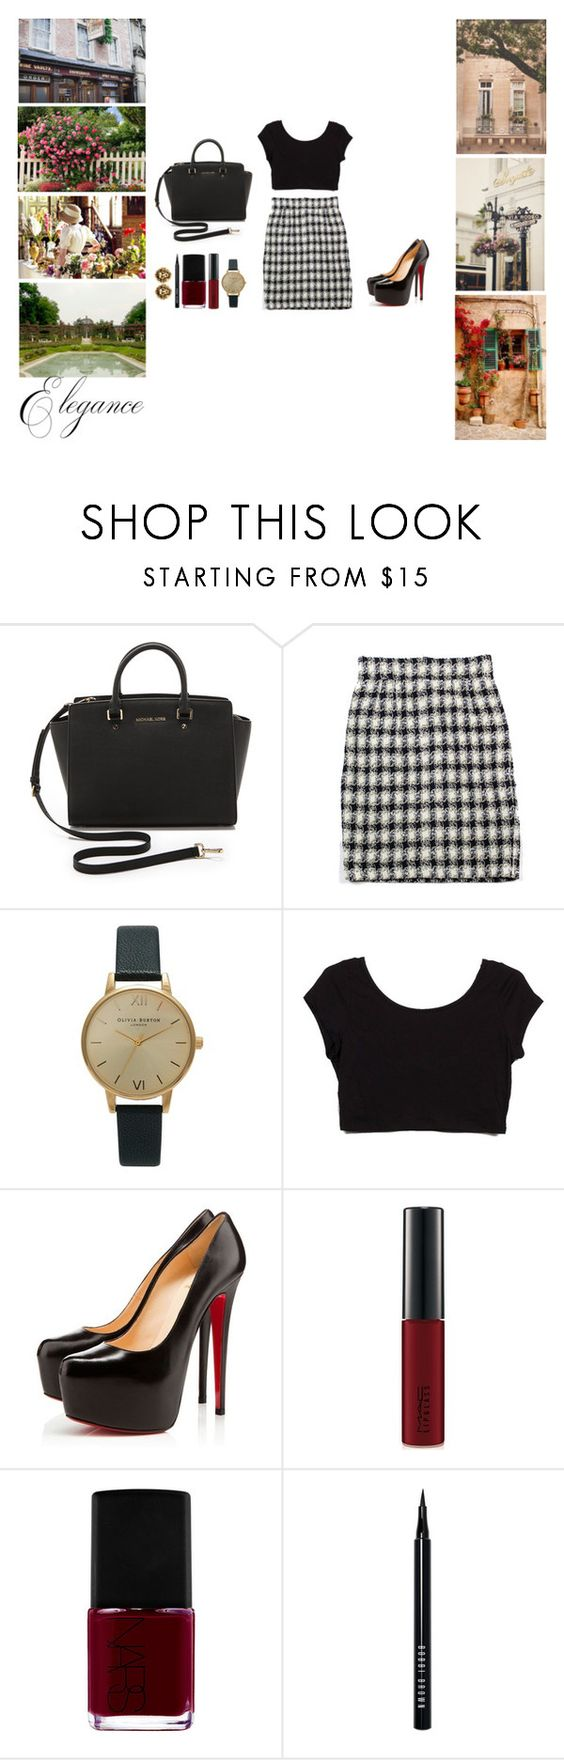 """""""Spring day"""" by fashionphilosophies ❤ liked on Polyvore featuring MICHAEL Michael Kors, Chanel, Olivia Burton, Christian Louboutin, MAC Cosmetics, NARS Cosmetics and Bobbi Brown Cosmetics"""